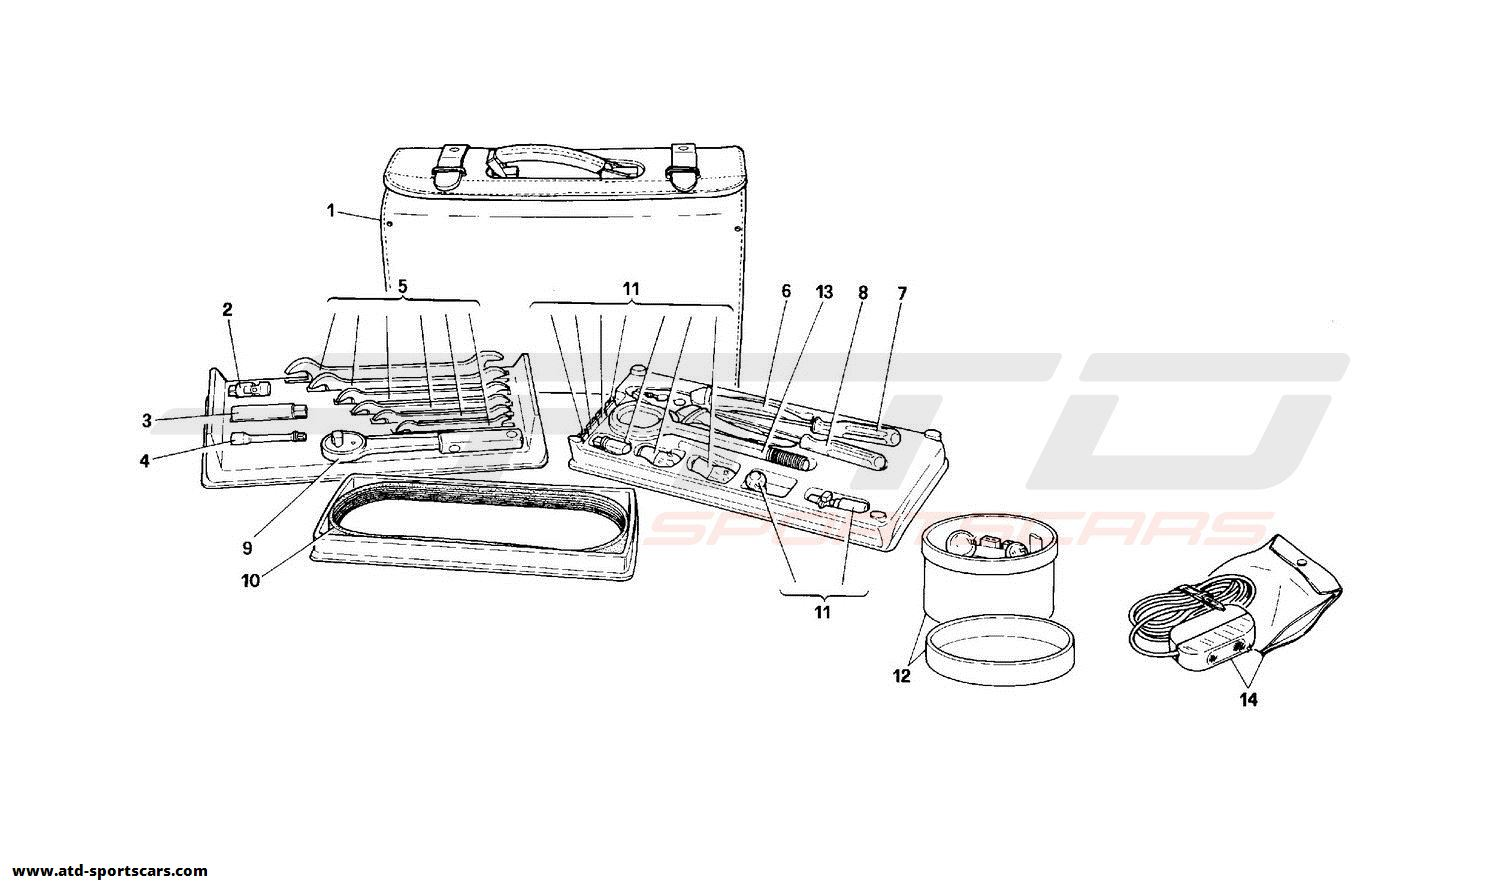 Ferrari 348 TOOLS EQUIPMENT